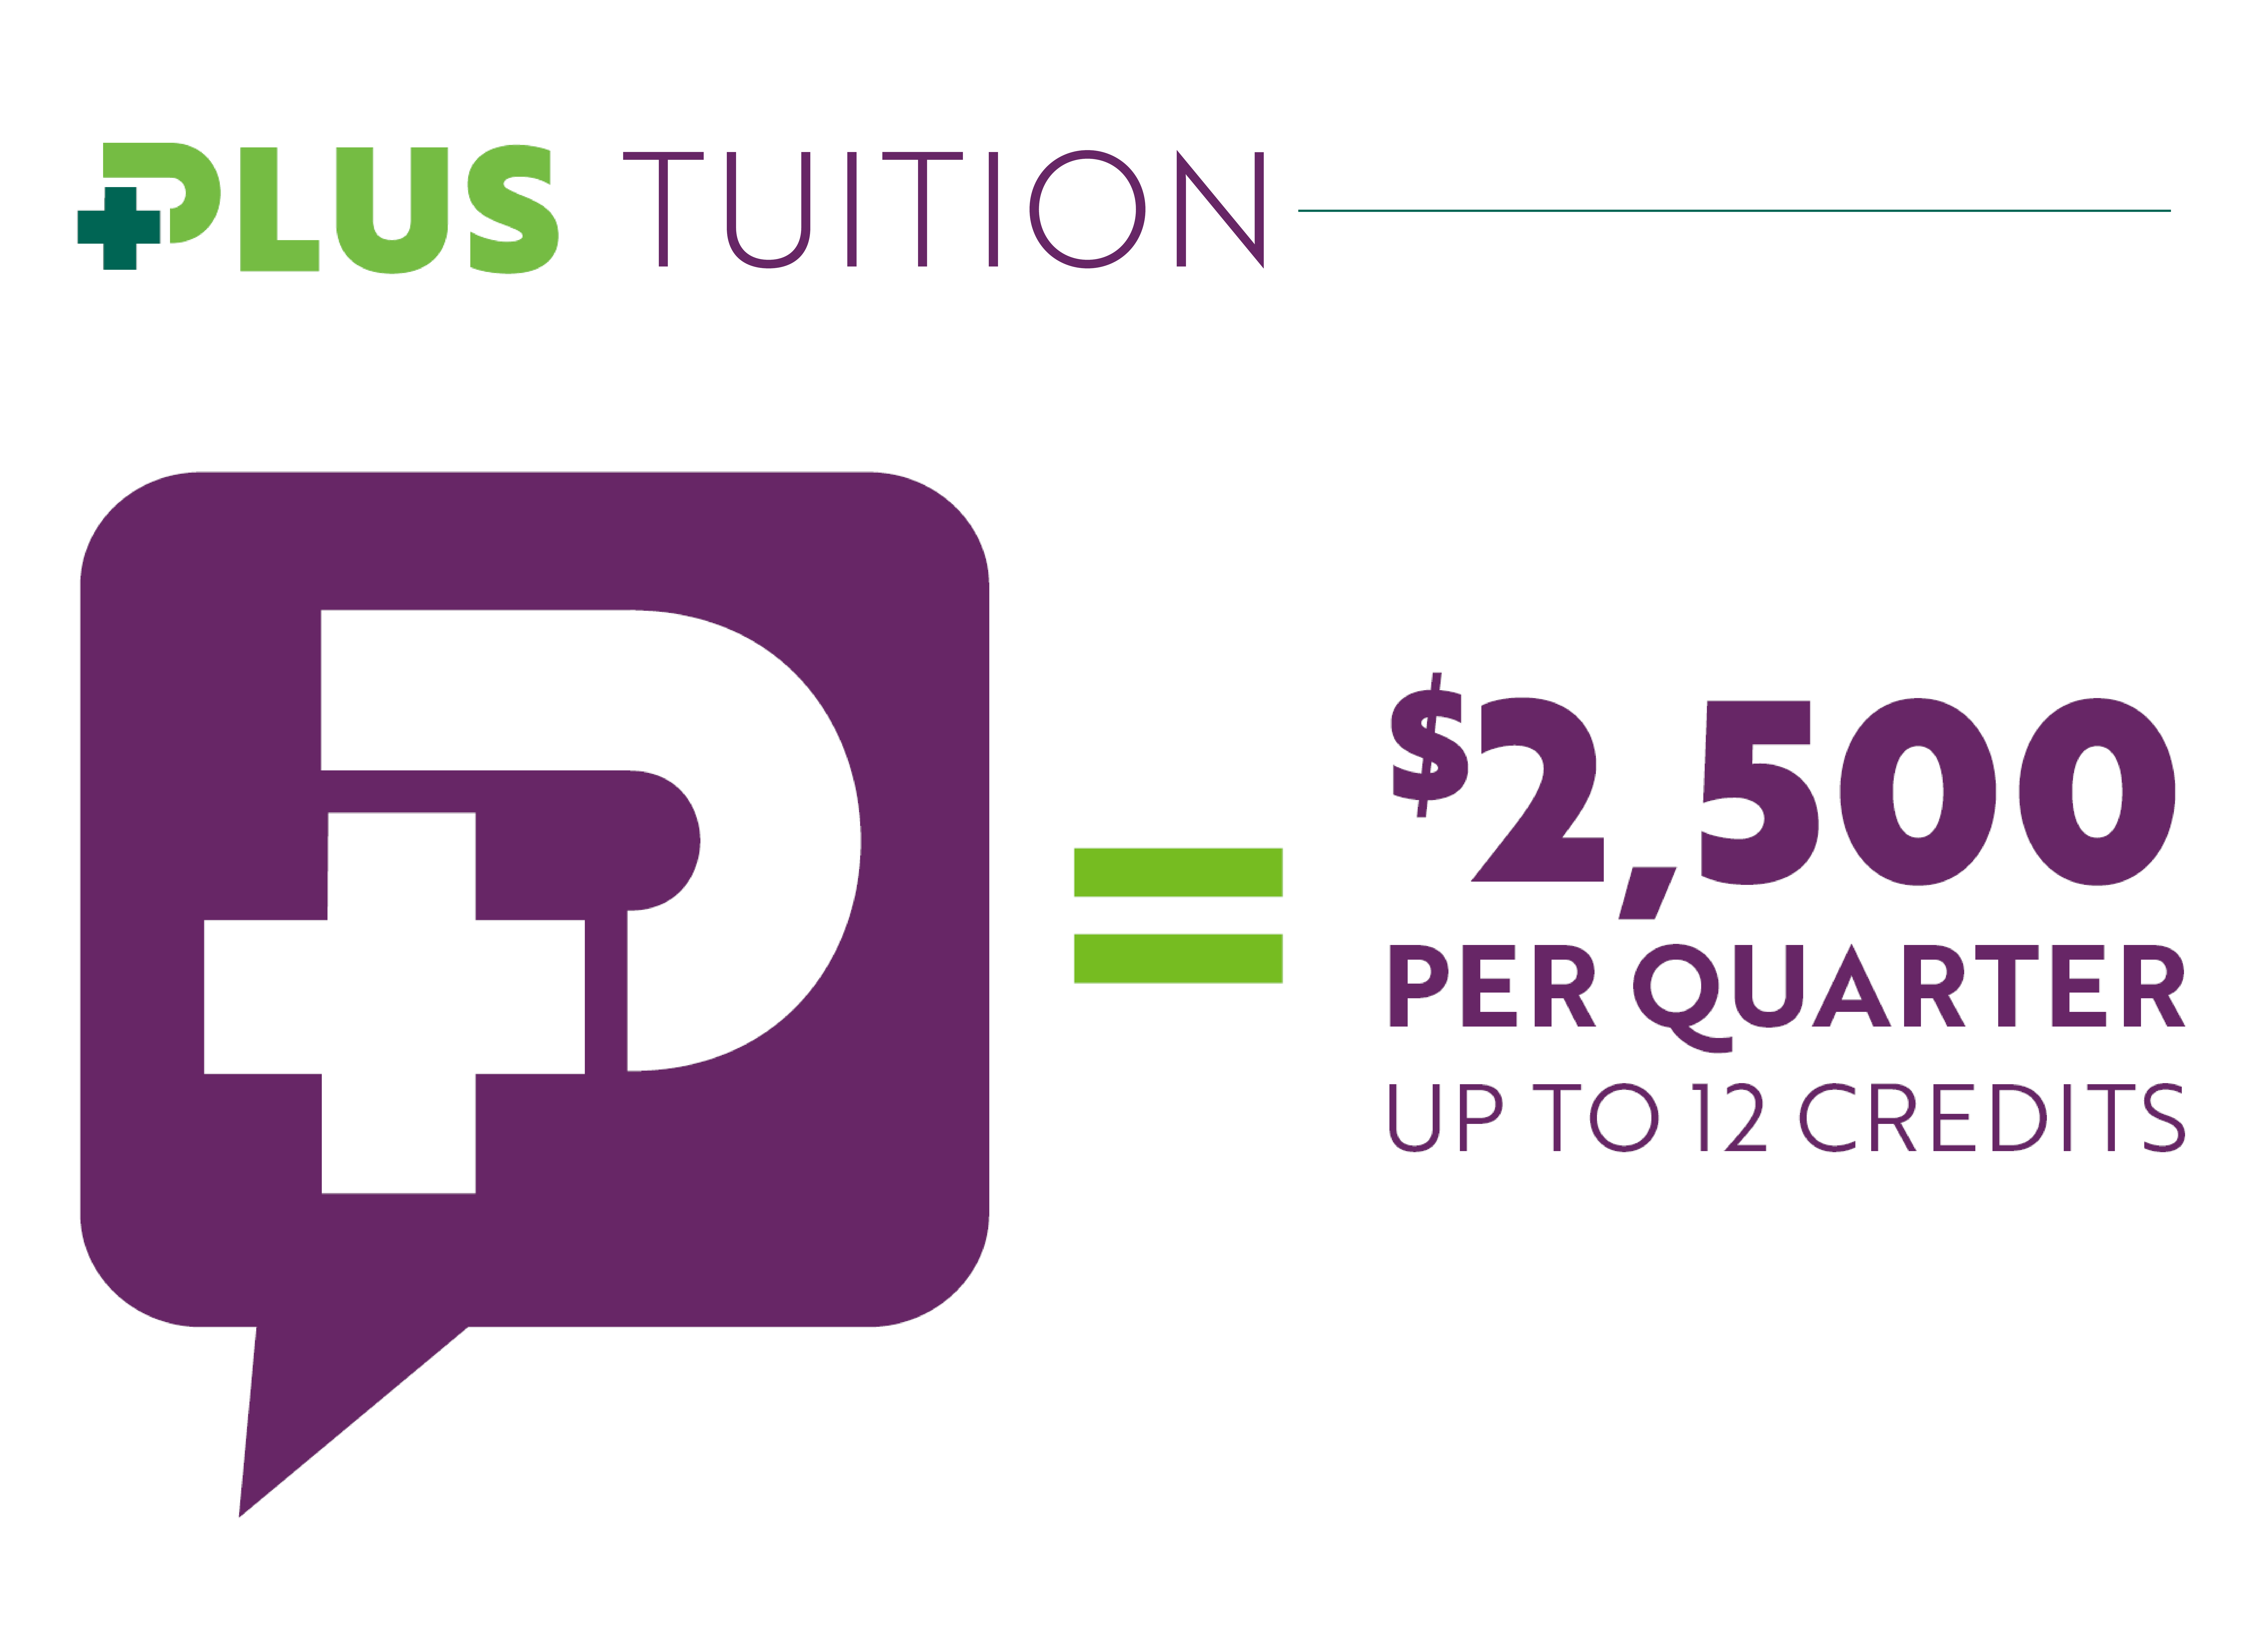 MercyPLUS Tuition: $2,500 Per Quarter